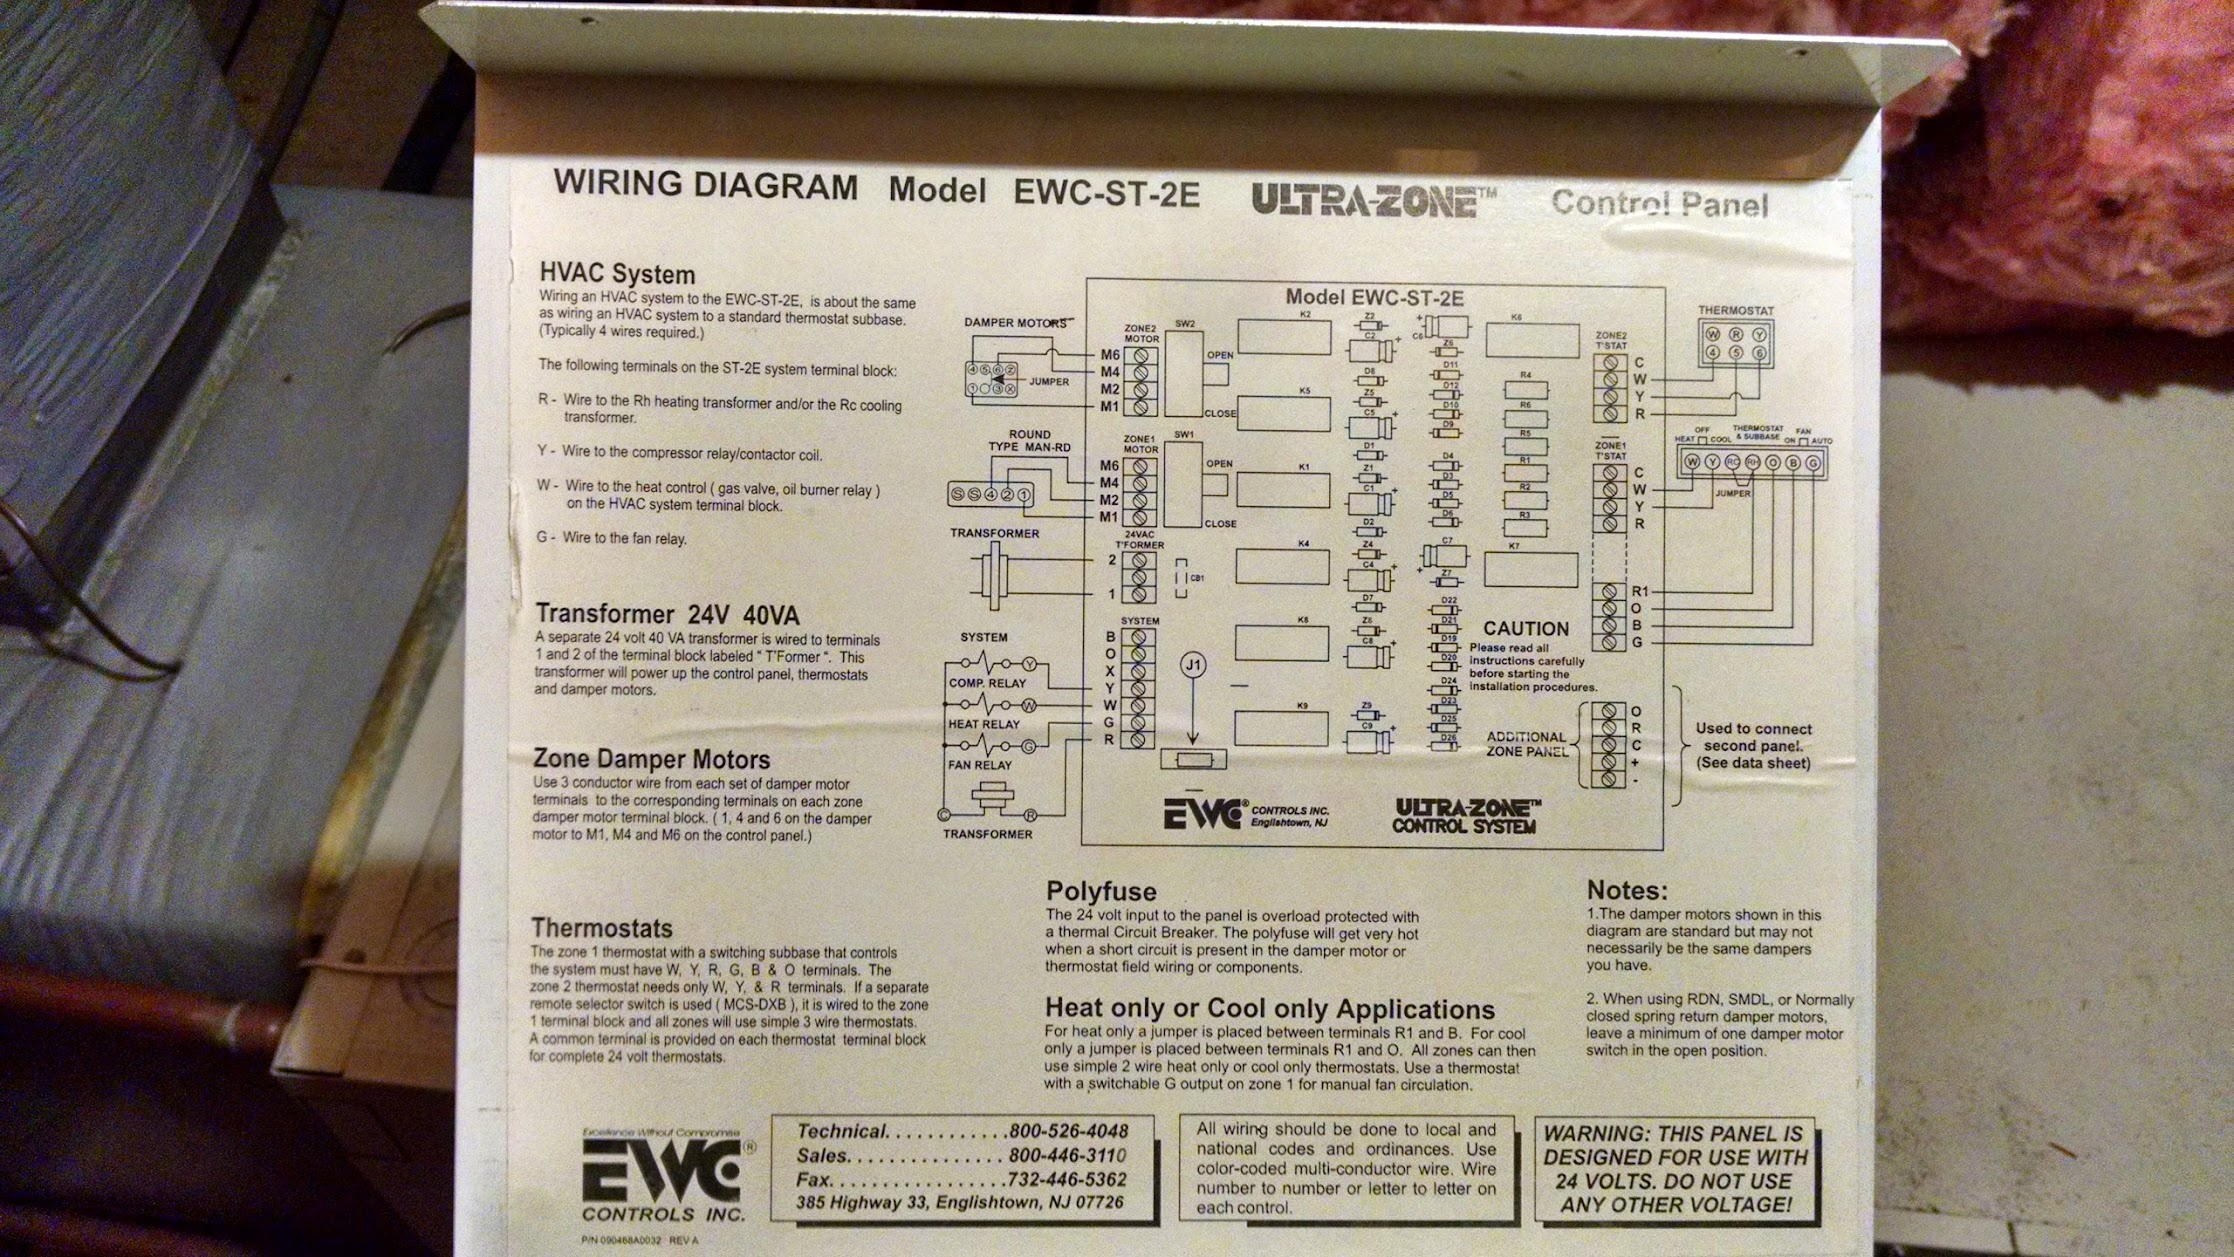 honeywell thermostat wiring diagram rth2510 fender squier p bass th5220d